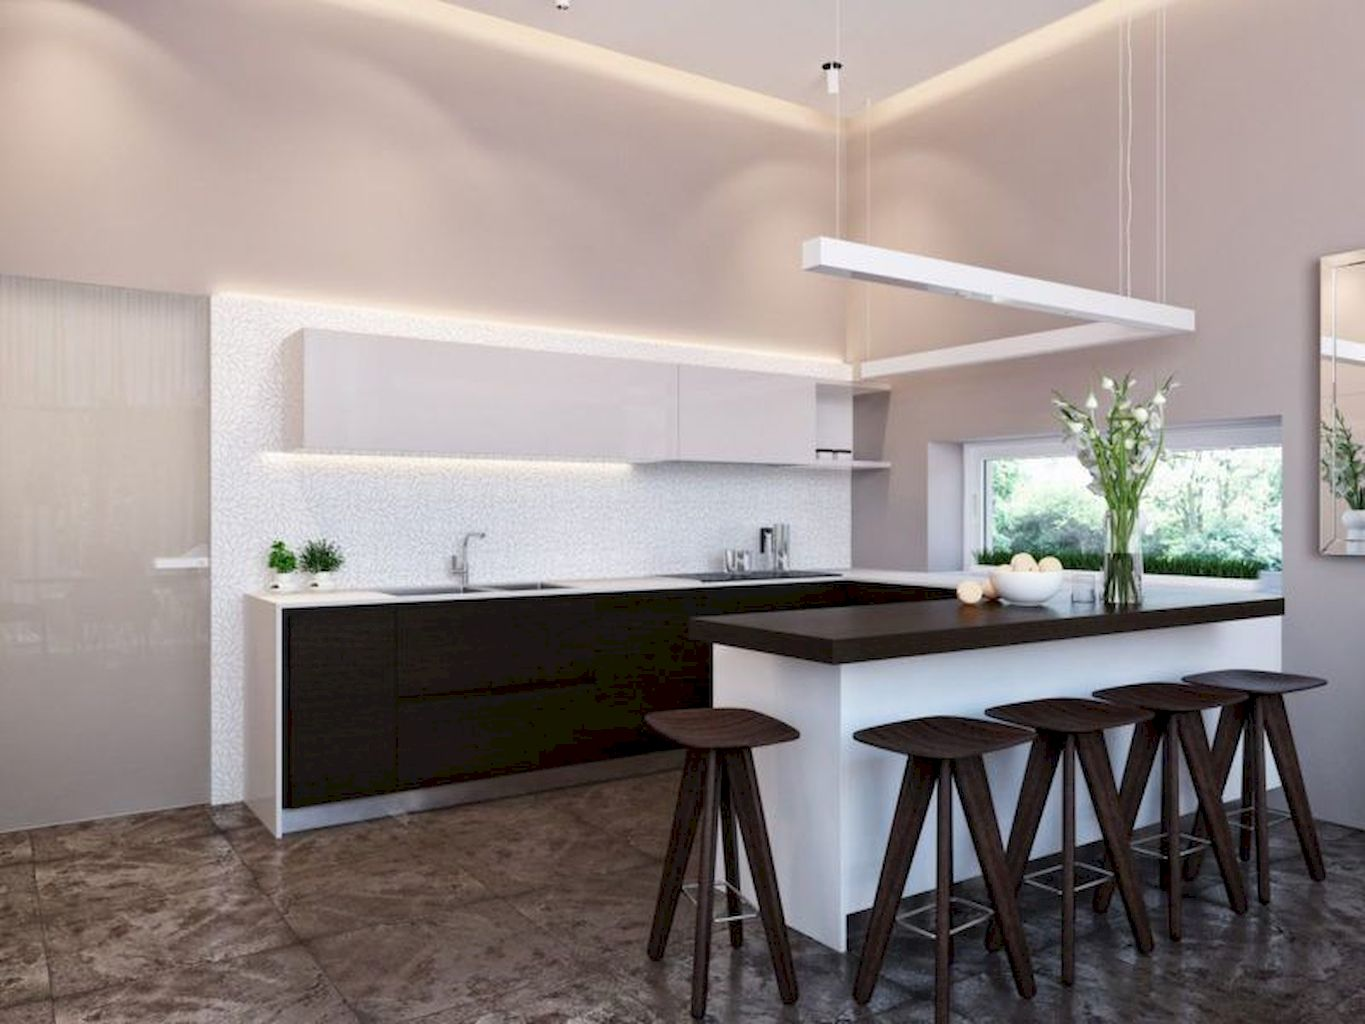 Kitchen Bar Design Pictures 50 Fabulous Kitchen Bar Design Ideas Elonahome